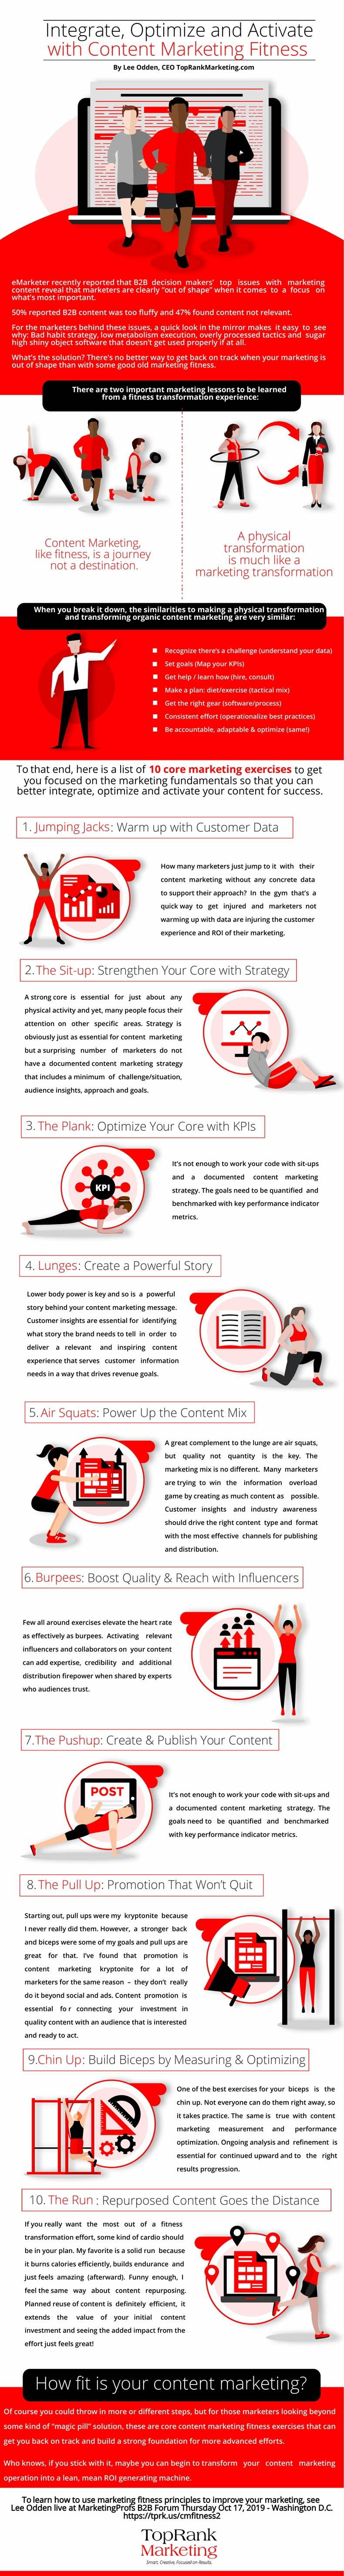 190806-infographic-Content-Marketing-Fitness-TopRank